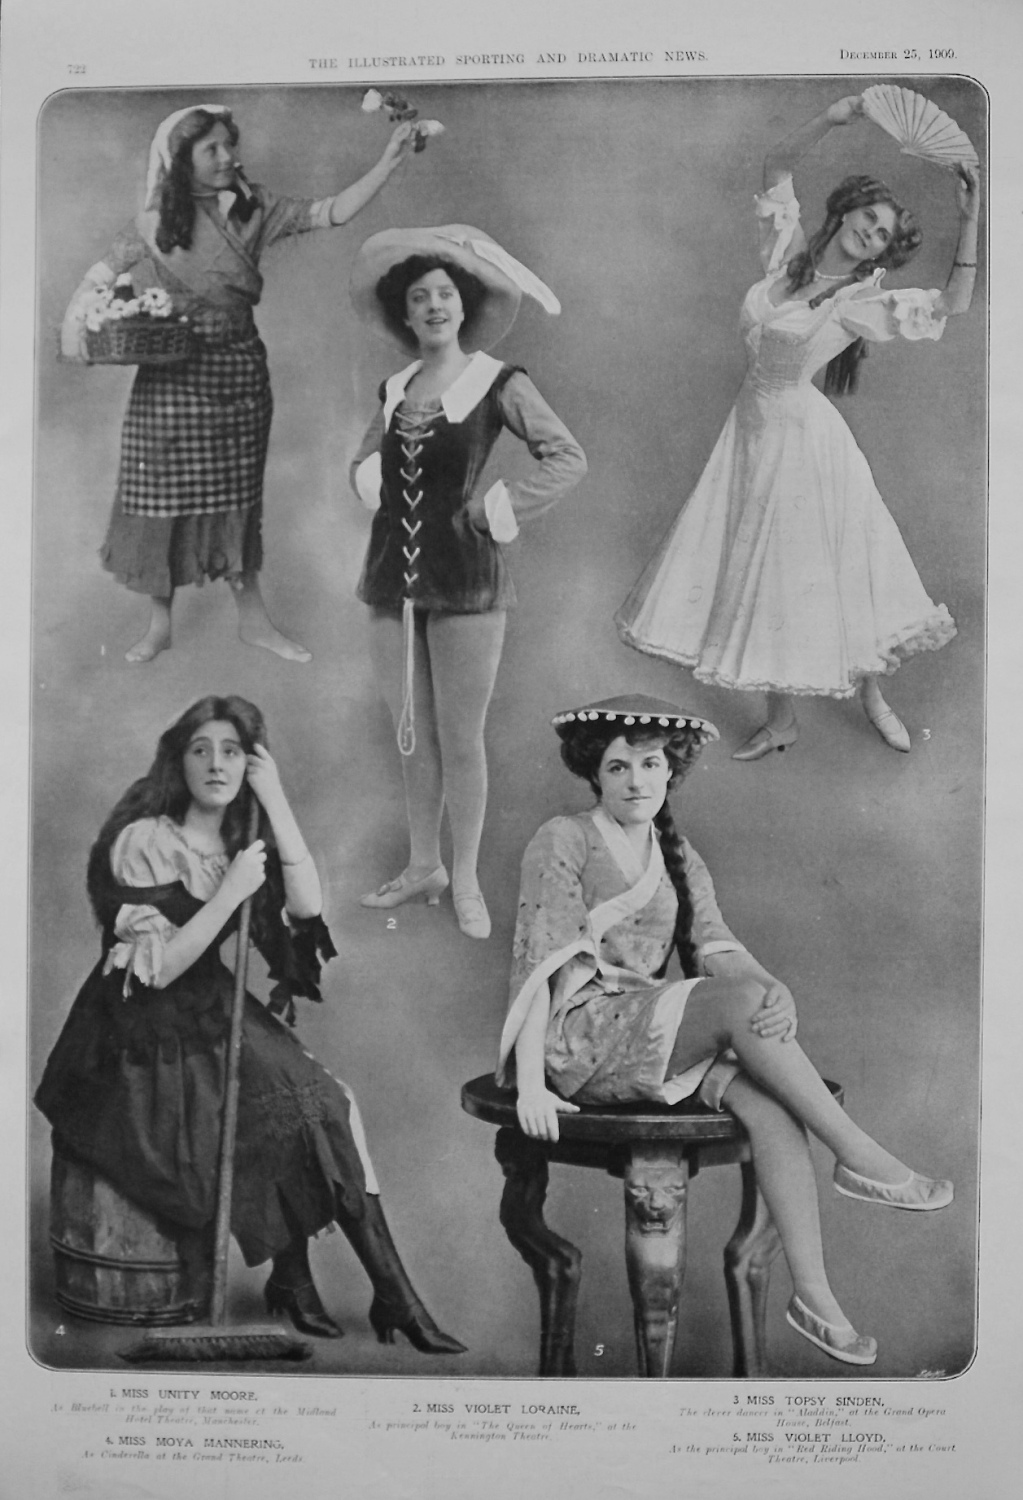 Actresses from the Stage. December 25th 1909.